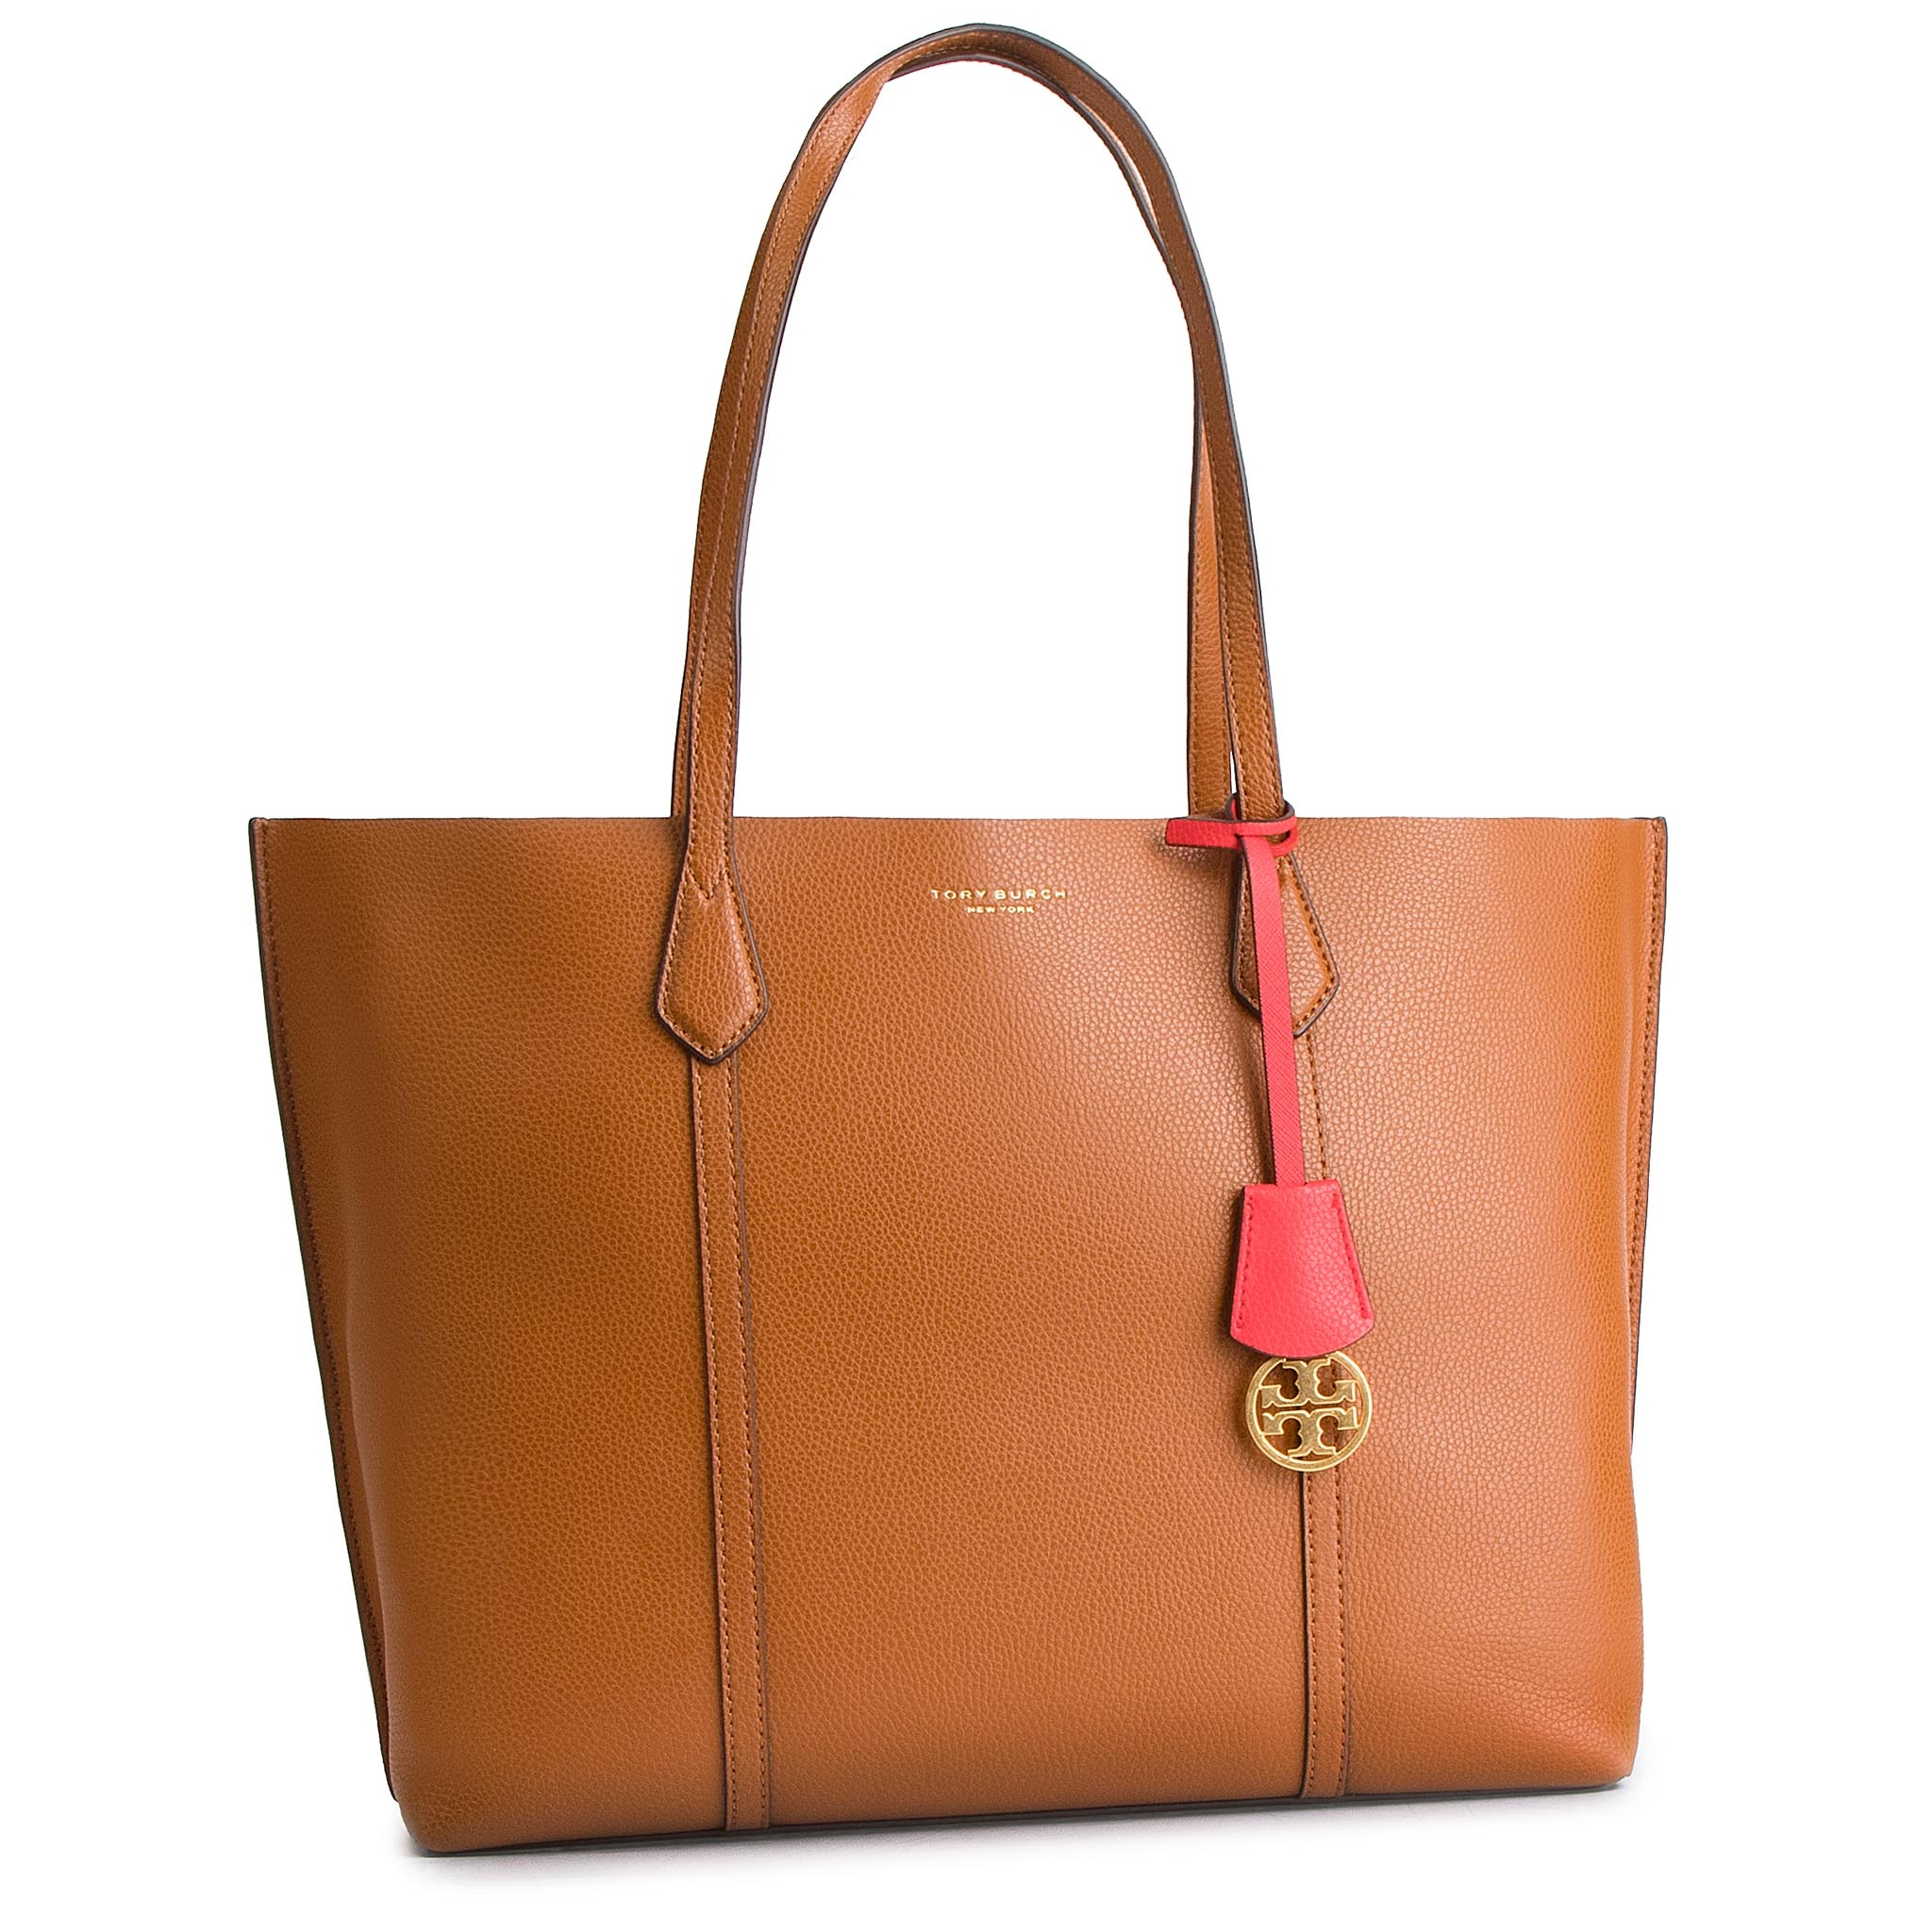 Geantă TORY BURCH - Perry Triple-Compartment Tote 53245 Light Umber 905